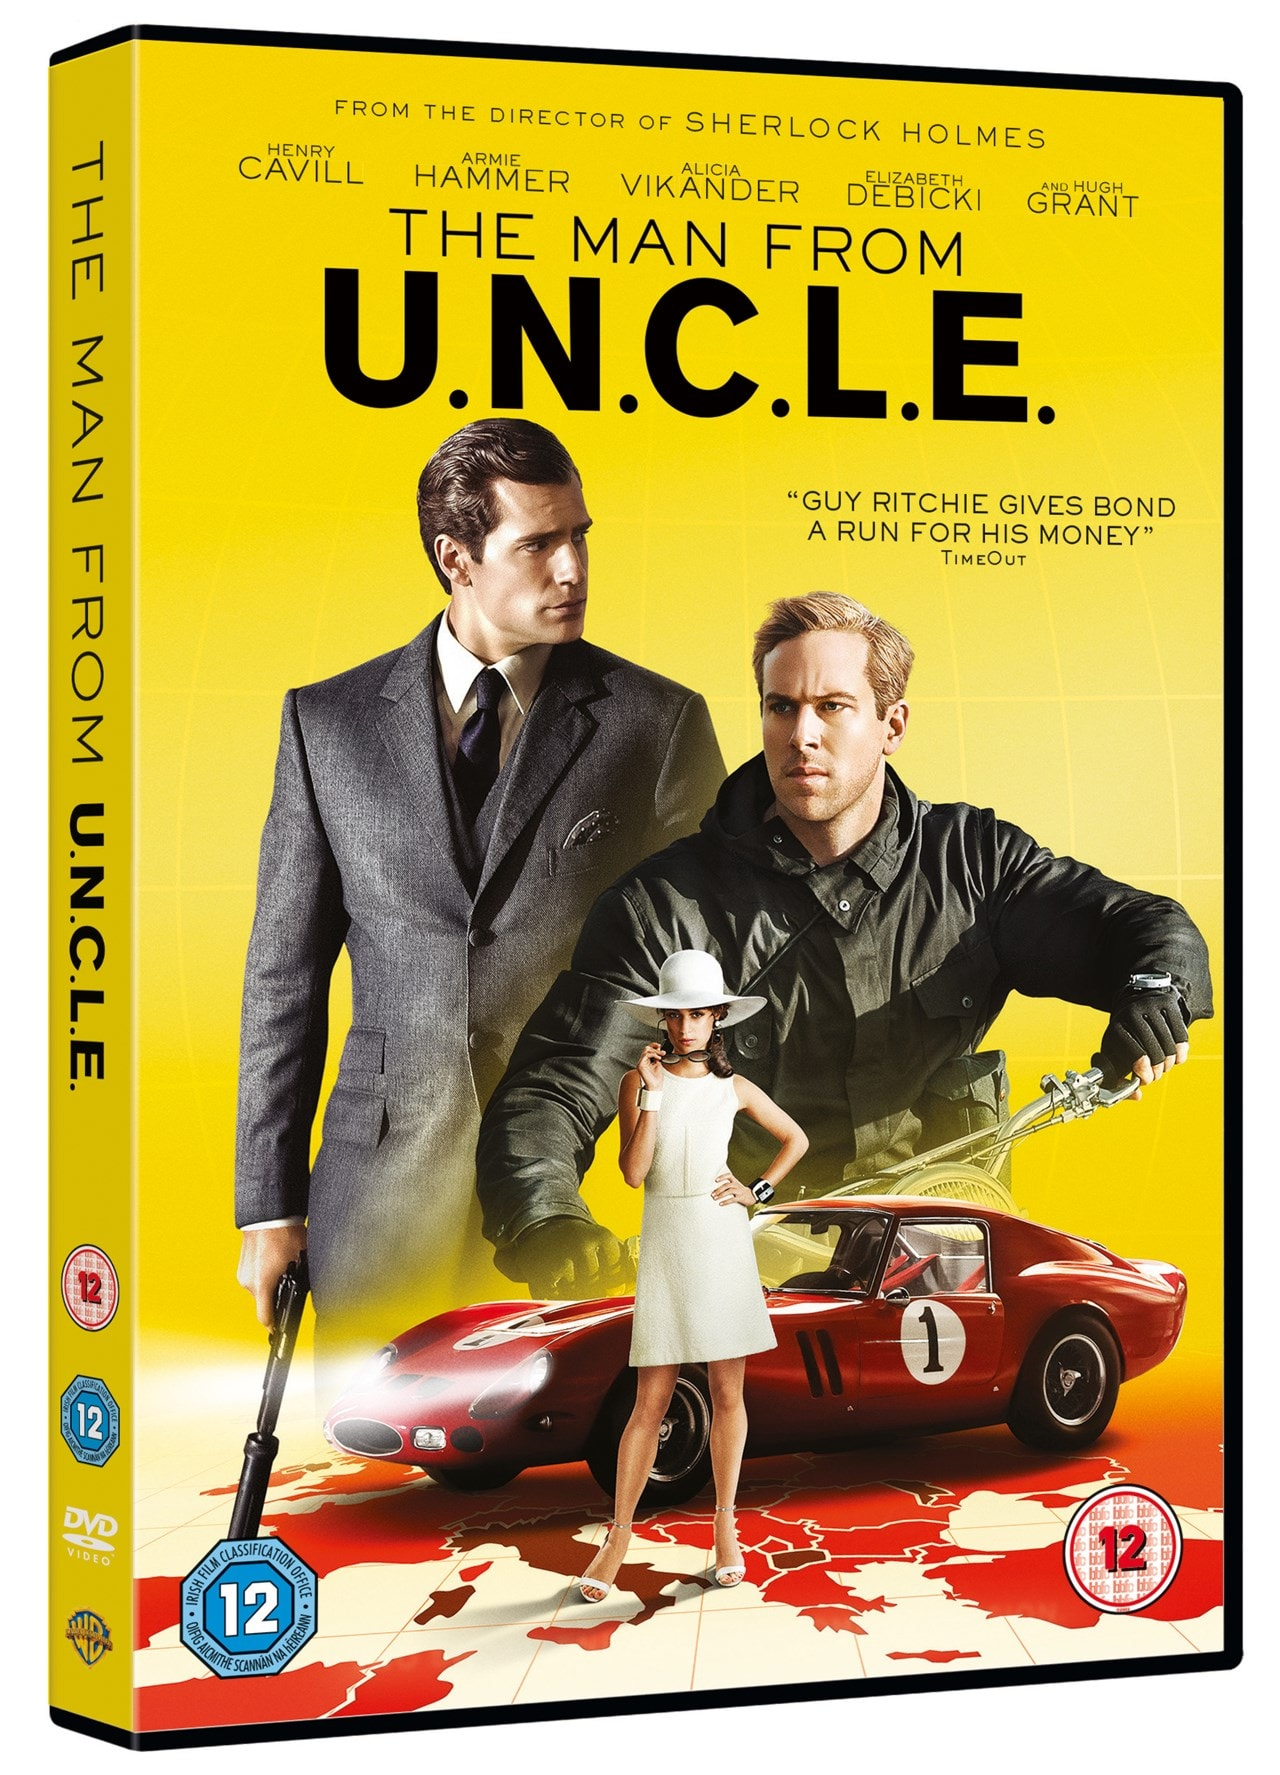 The Man from U.N.C.L.E. - 2